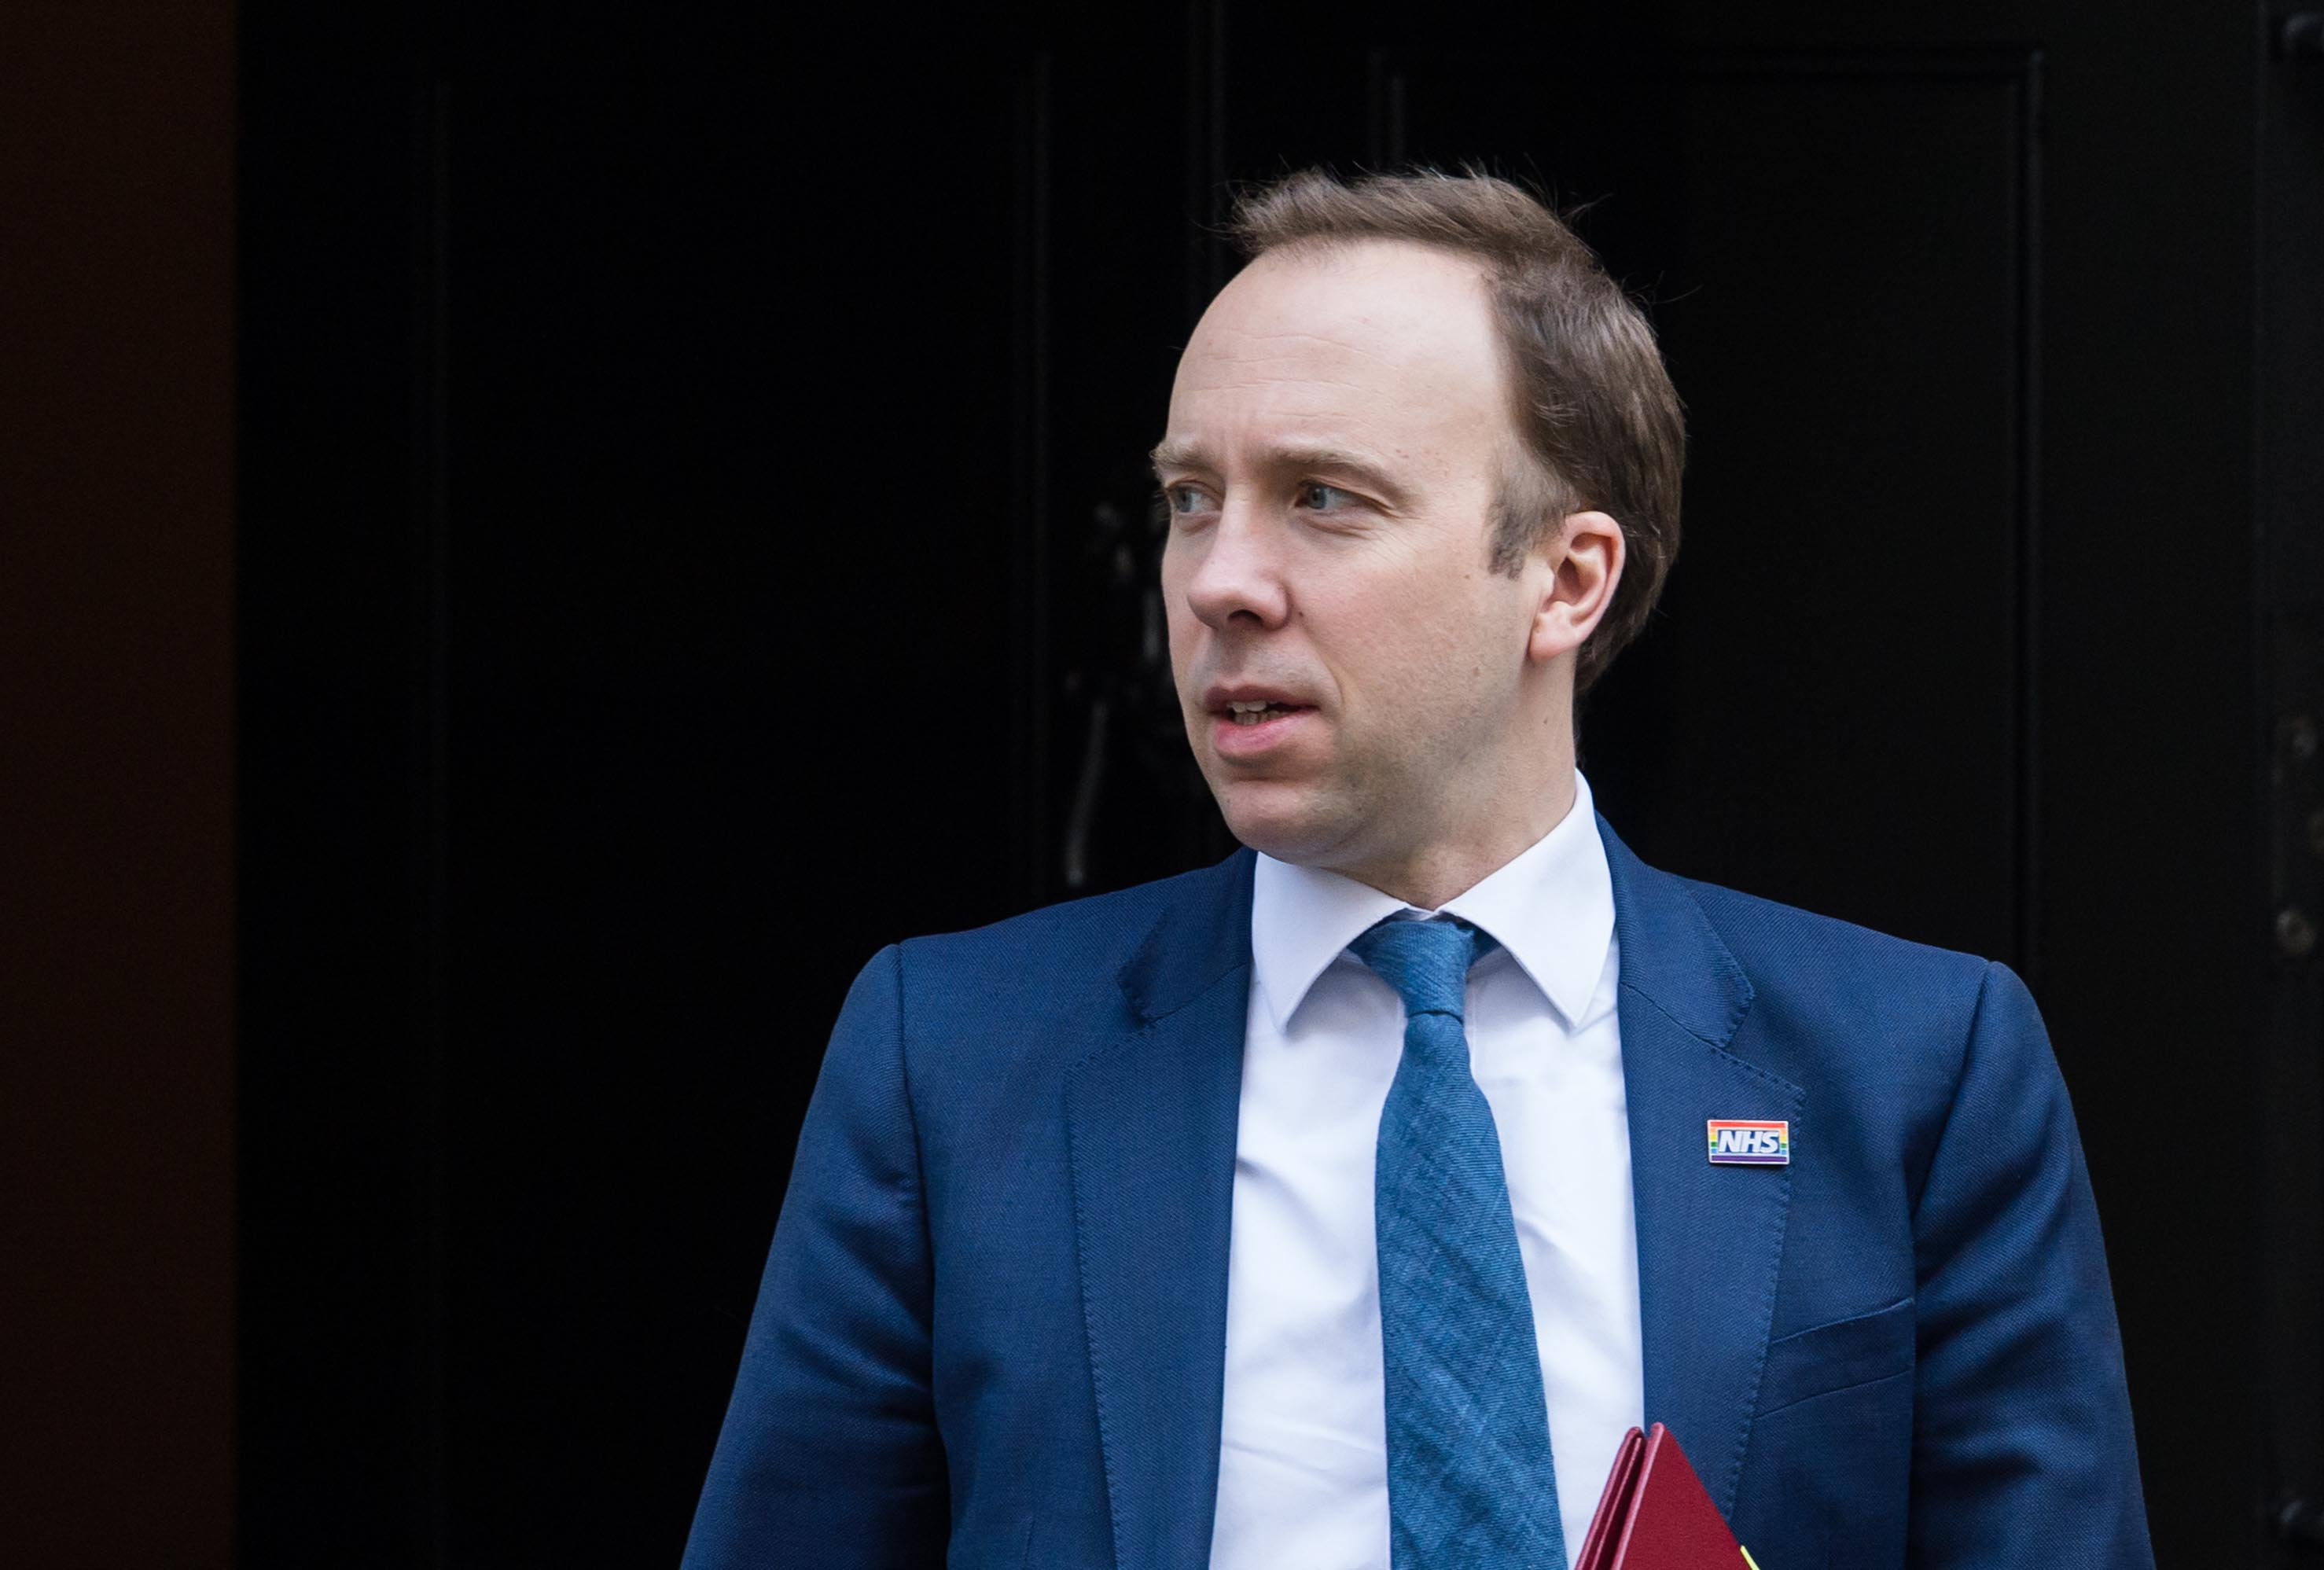 Secretary of State for Health and Social Care Matt Hancock leaves 10 Downing Street in London on March 25.